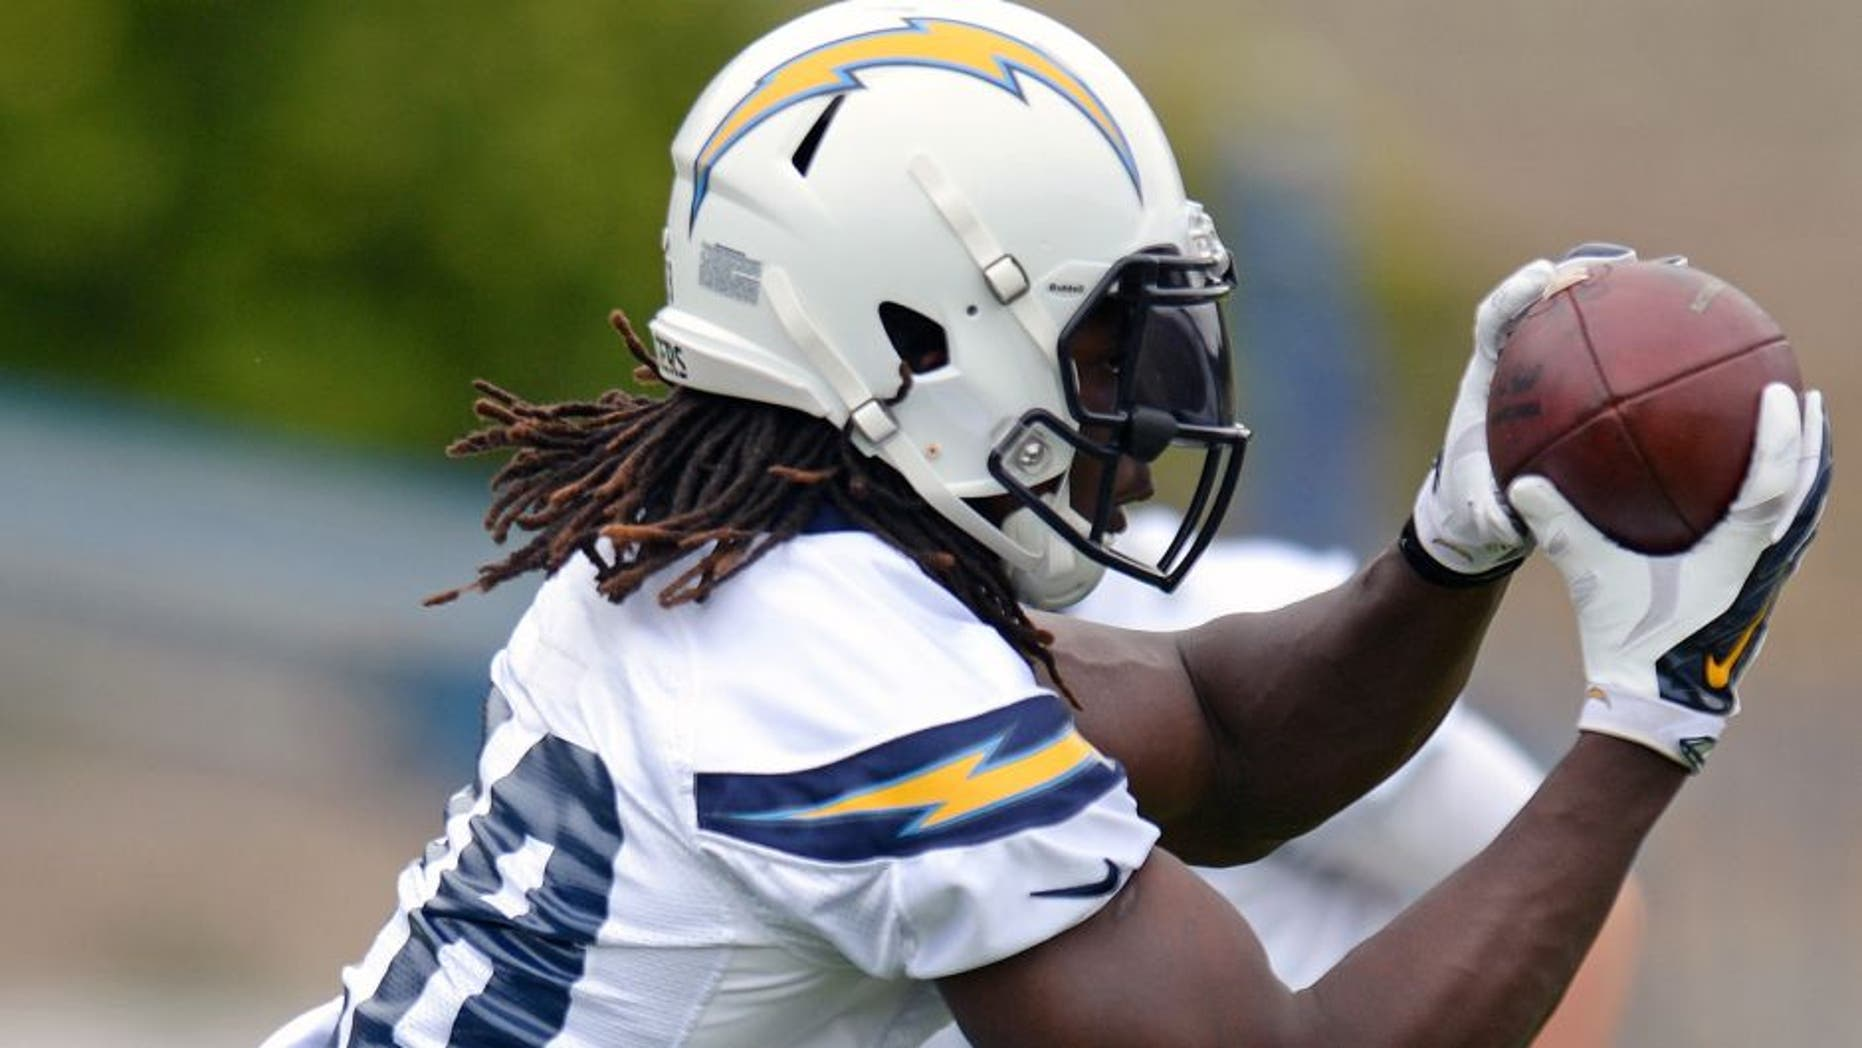 May 26, 2015; San Diego, CA, USA; San Diego Chargers running back Melvin Gordon catches a pitch during organized team activities at Charger Park. Mandatory Credit: Jake Roth-USA TODAY Sports